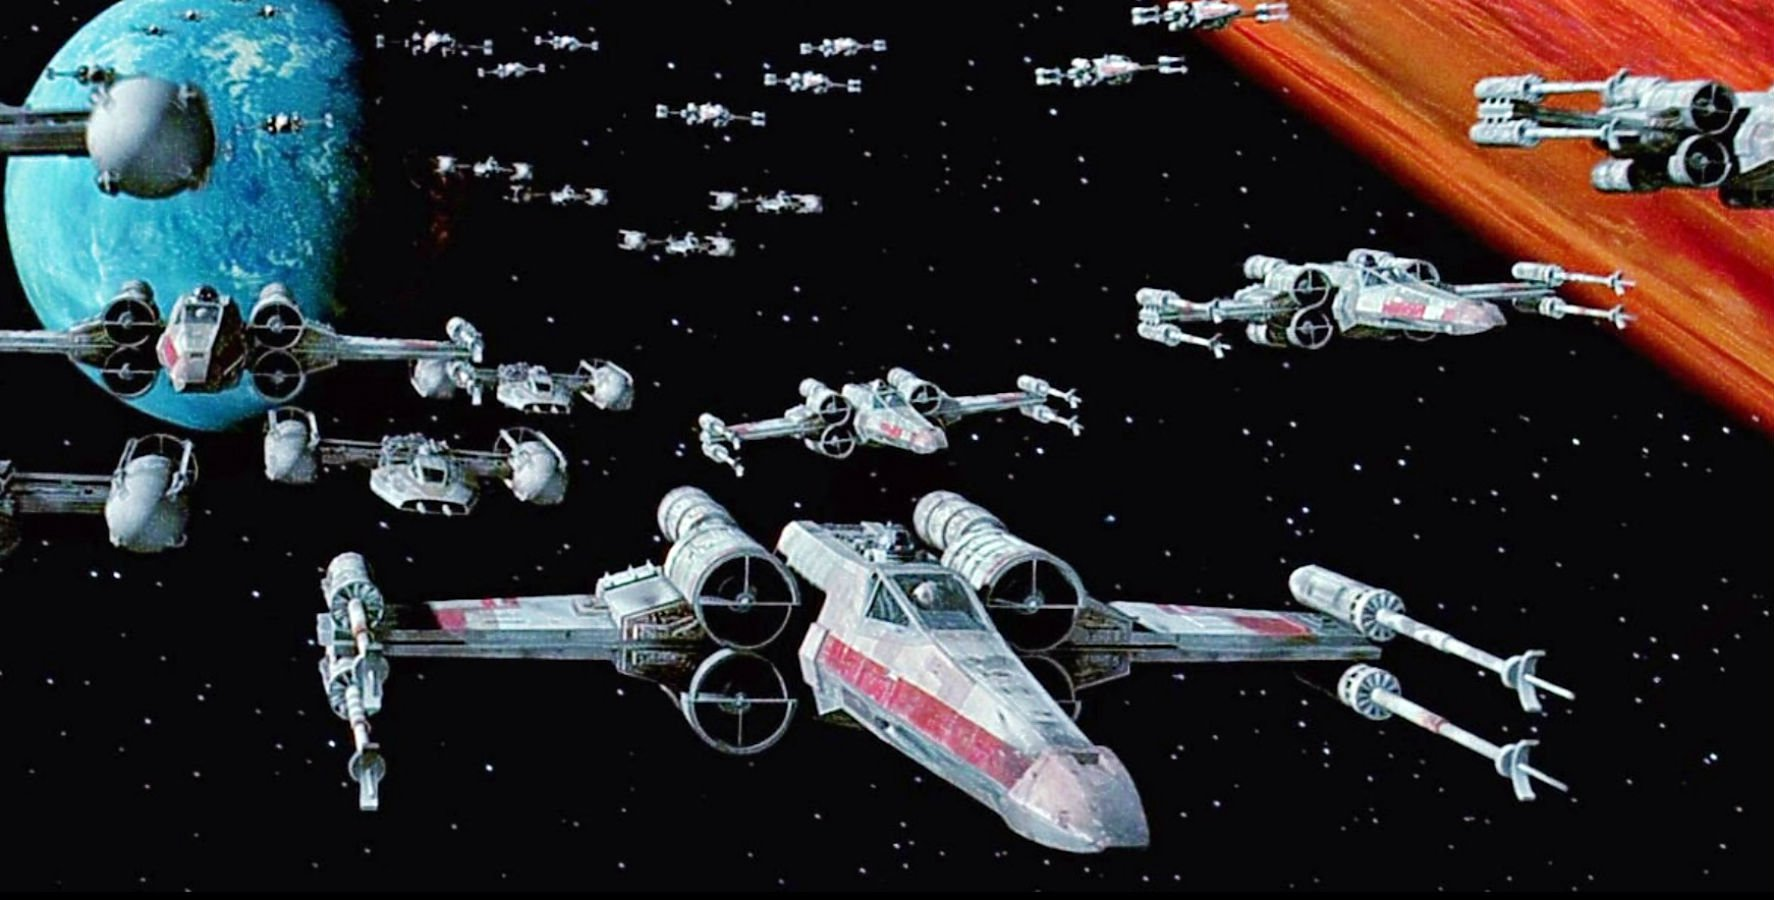 Rogue One Star Wars Story Sci Fi Space Futuristic Opera 1rosw Disney Action Fighting Spaceship Wallpaper 1774x900 812013 Wallpaperup